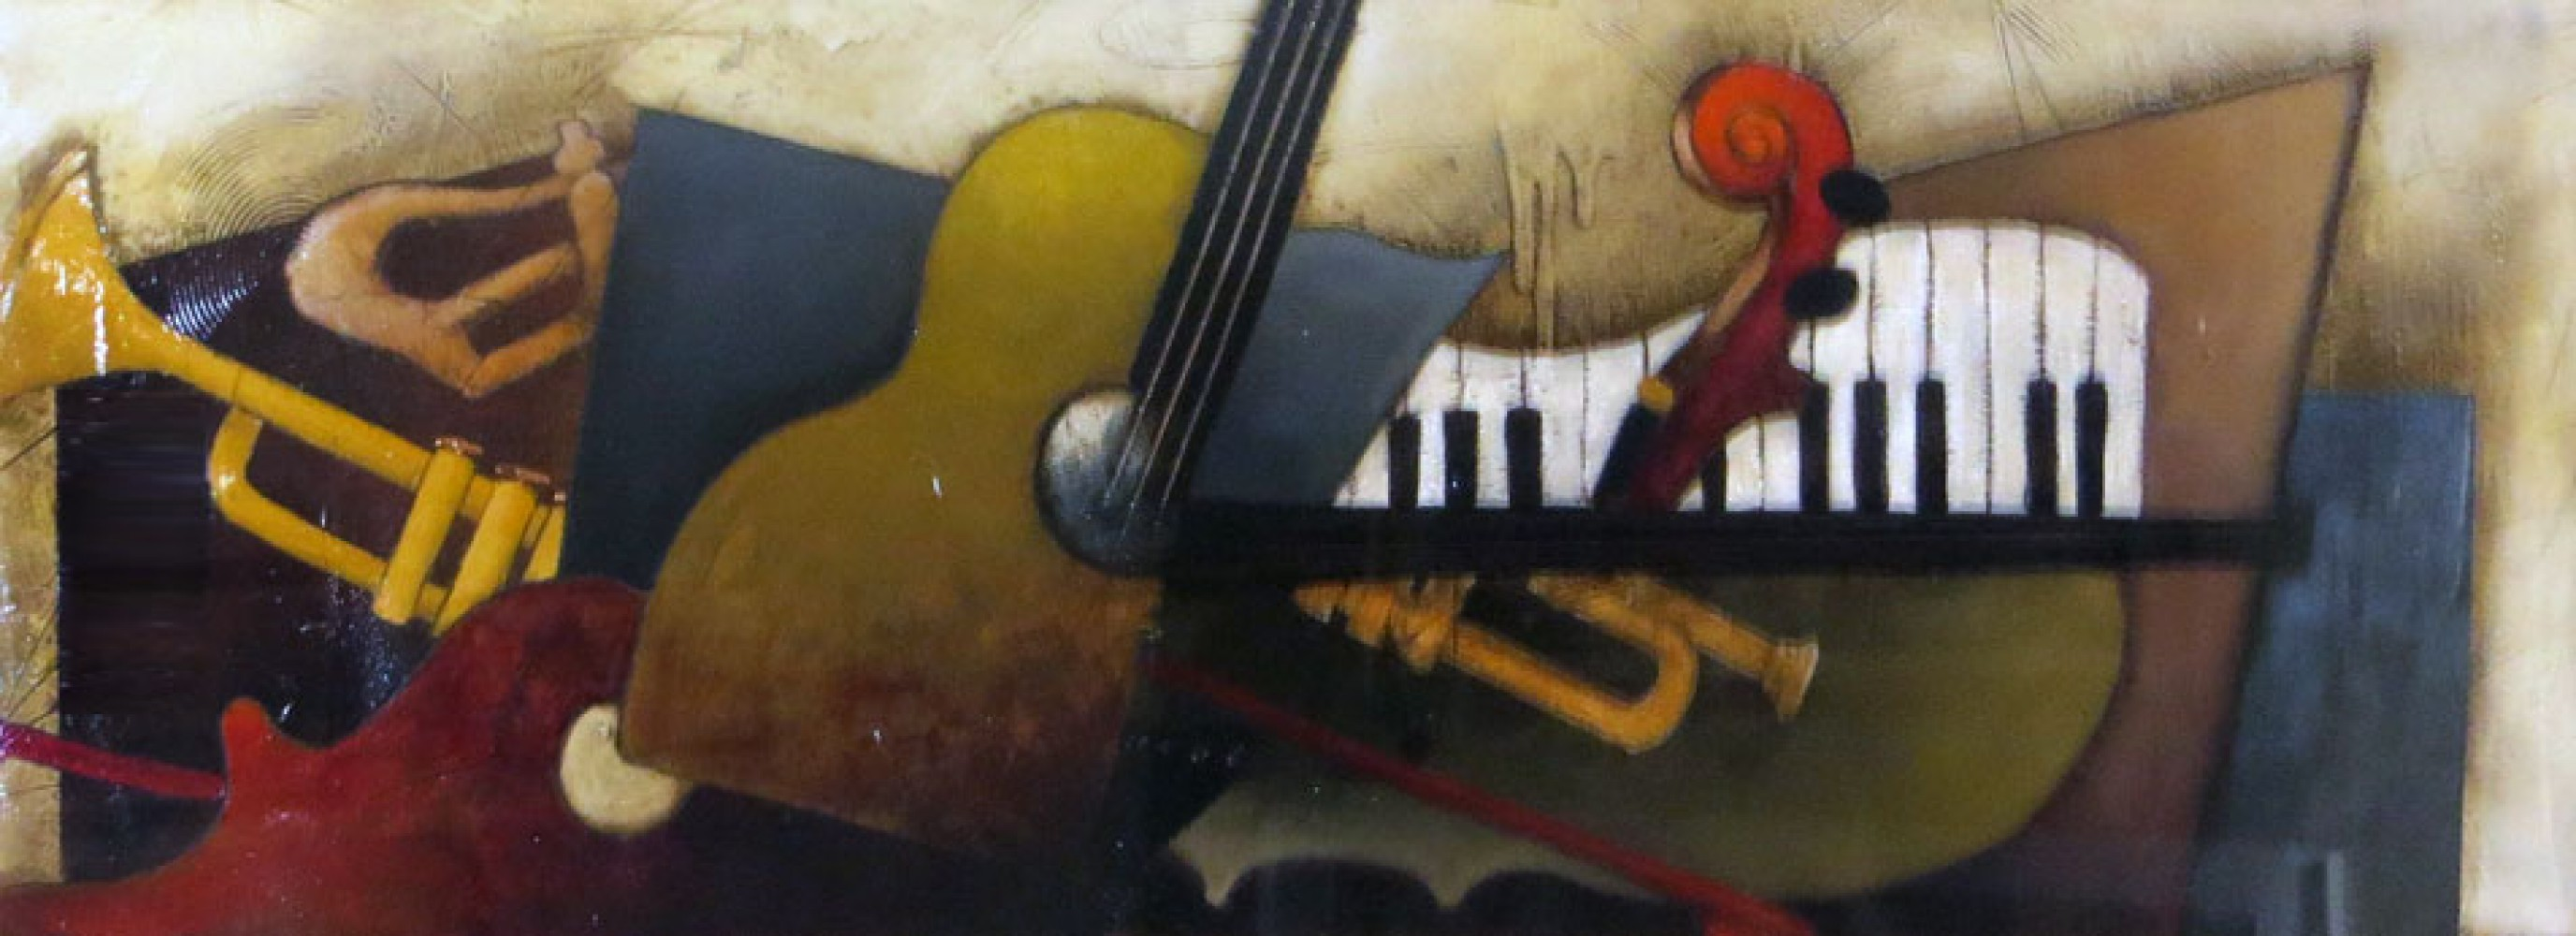 Orchestration 1999 39x73 by Emanuel Mattini